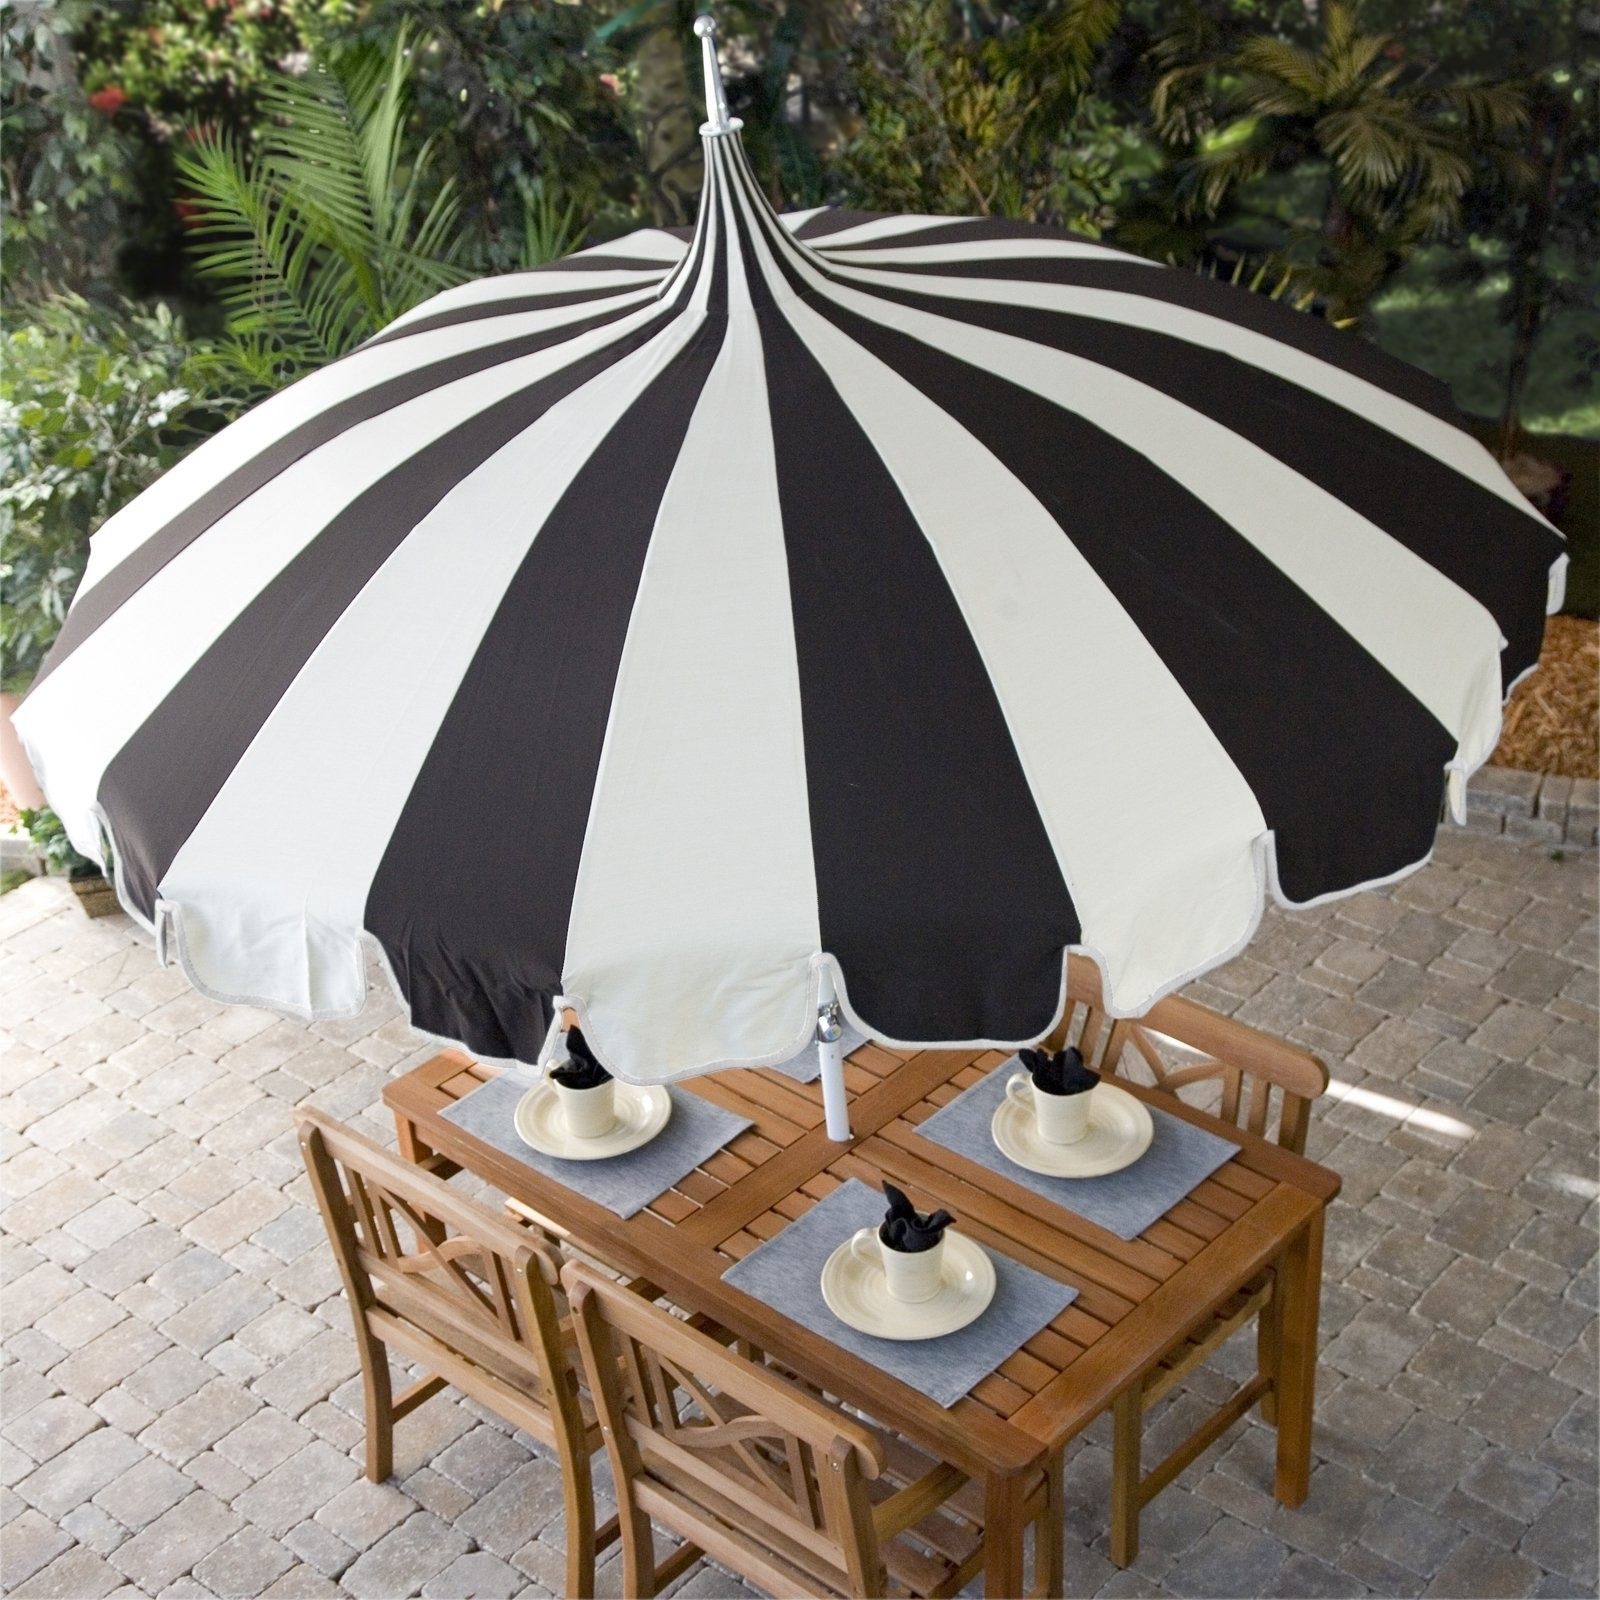 Popular Pagoda Umbrella Sea Green Designs Llc Of Striped Patio Umbrella Inside Striped Sunbrella Patio Umbrellas (View 13 of 20)